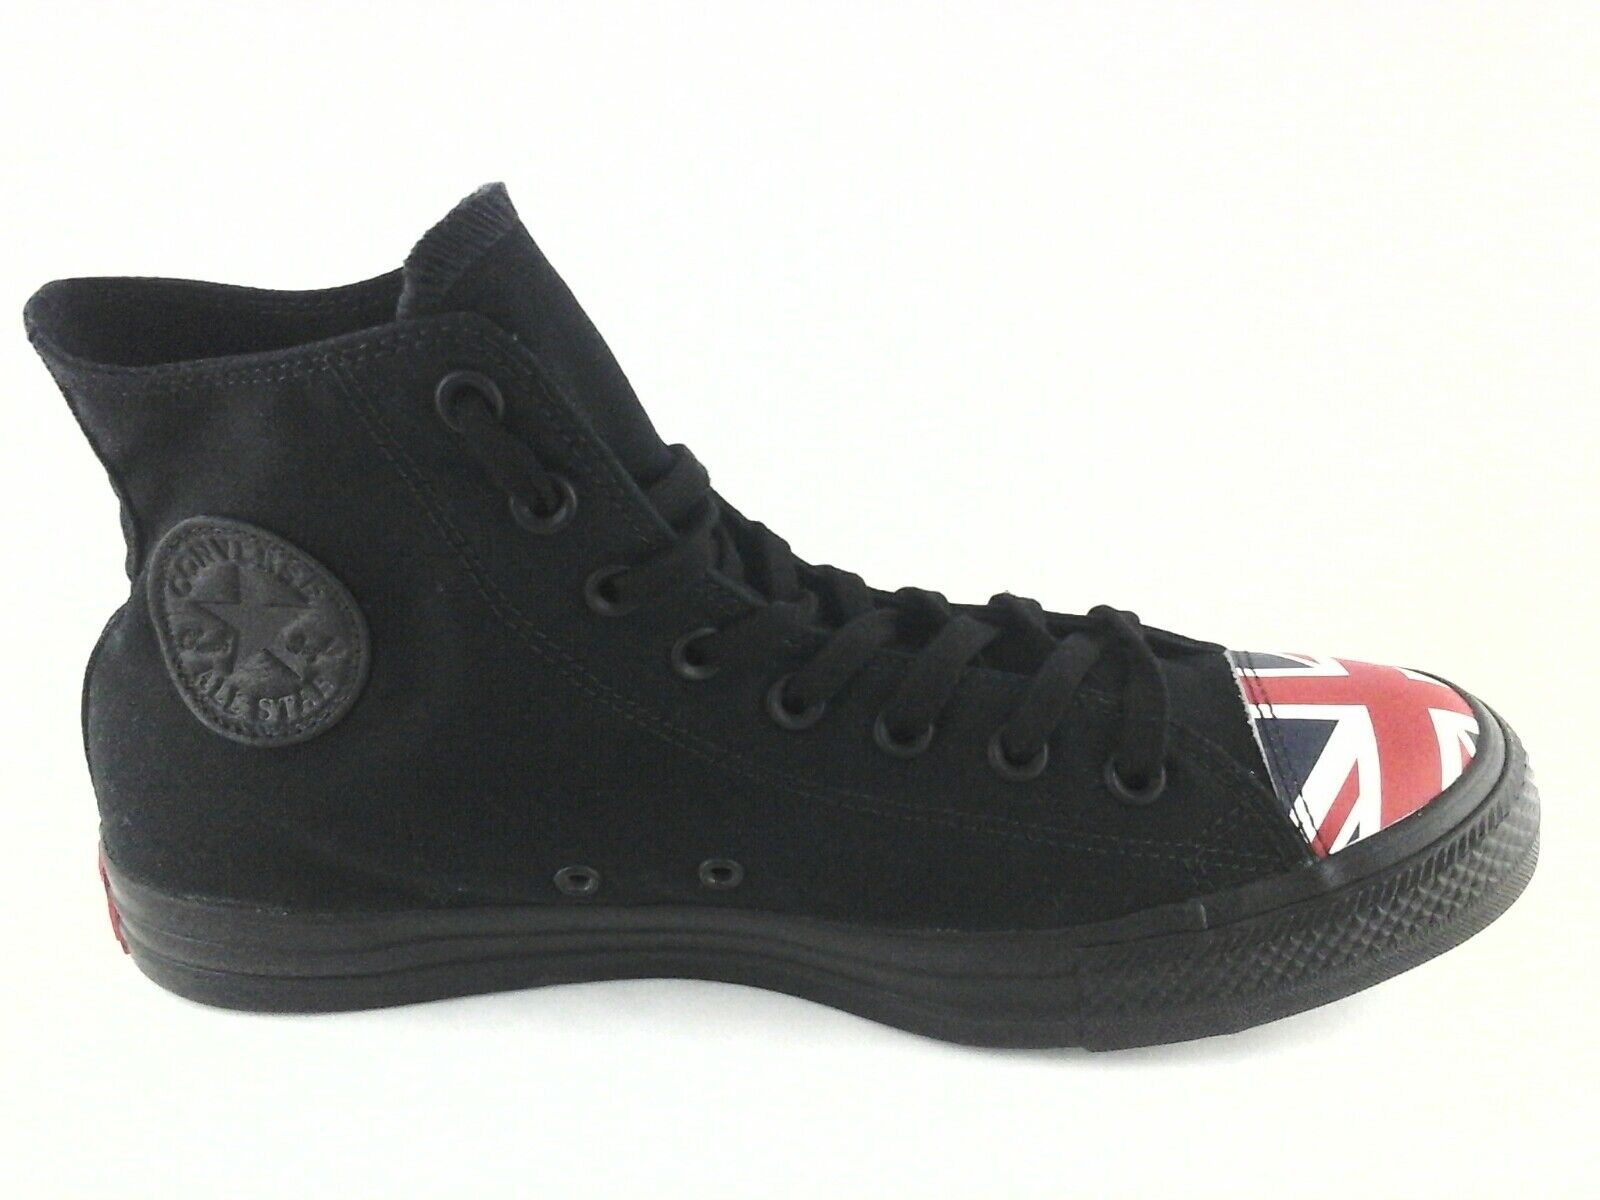 CONVERSE UNION JACK ENGLAND UK Trooper MENS WOMENS HI SHOES 9.5 11.5 10.5 12.5